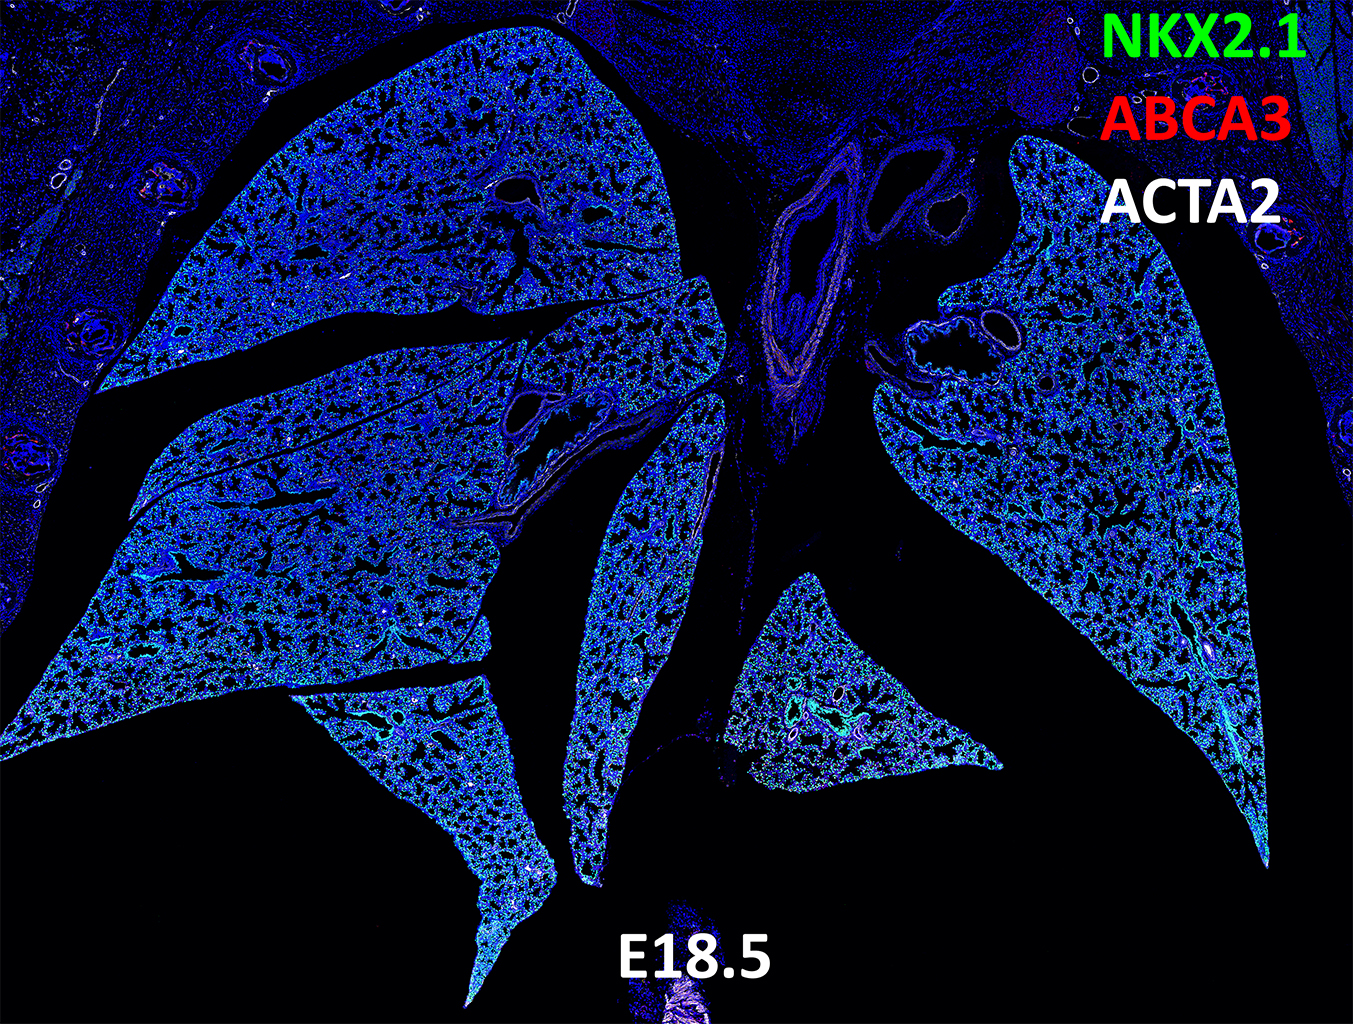 E18.5 Confocal Imaging Showing Protein Expression of Nkx2.1, Abca3 and Acta2 Genes